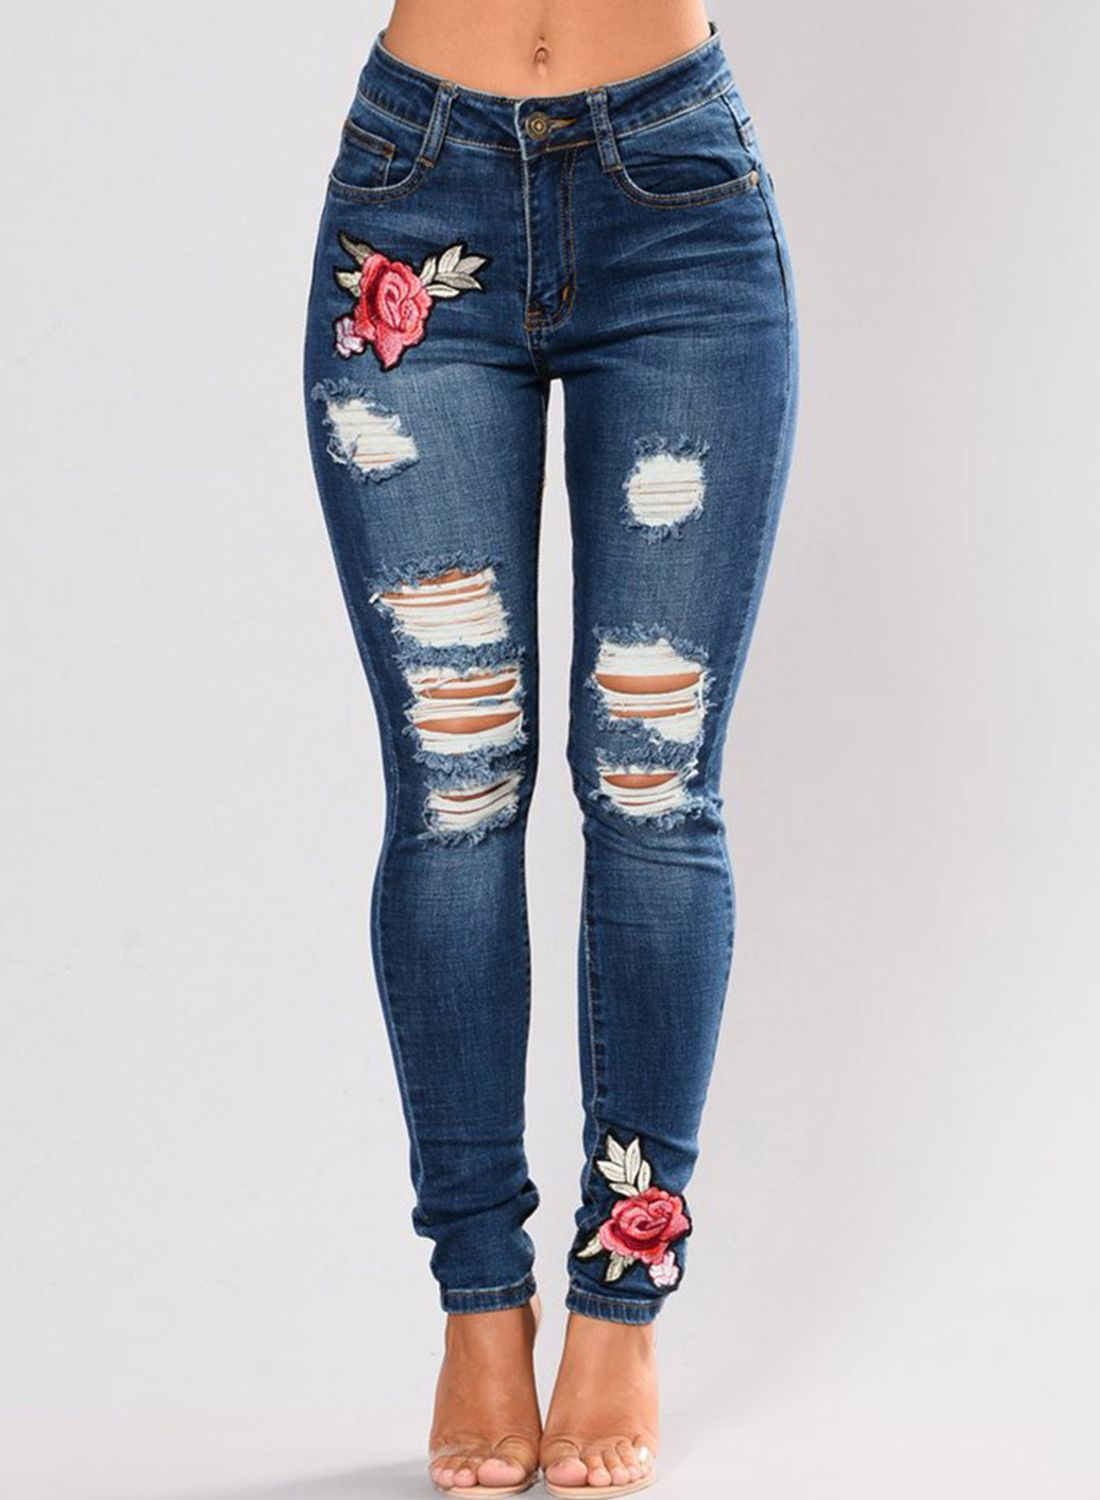 7a1c2284f42 DIY-How-to-Rip-Your-Jeans- | Fashion | Diy ripped jeans, Riped jeans, Jeans